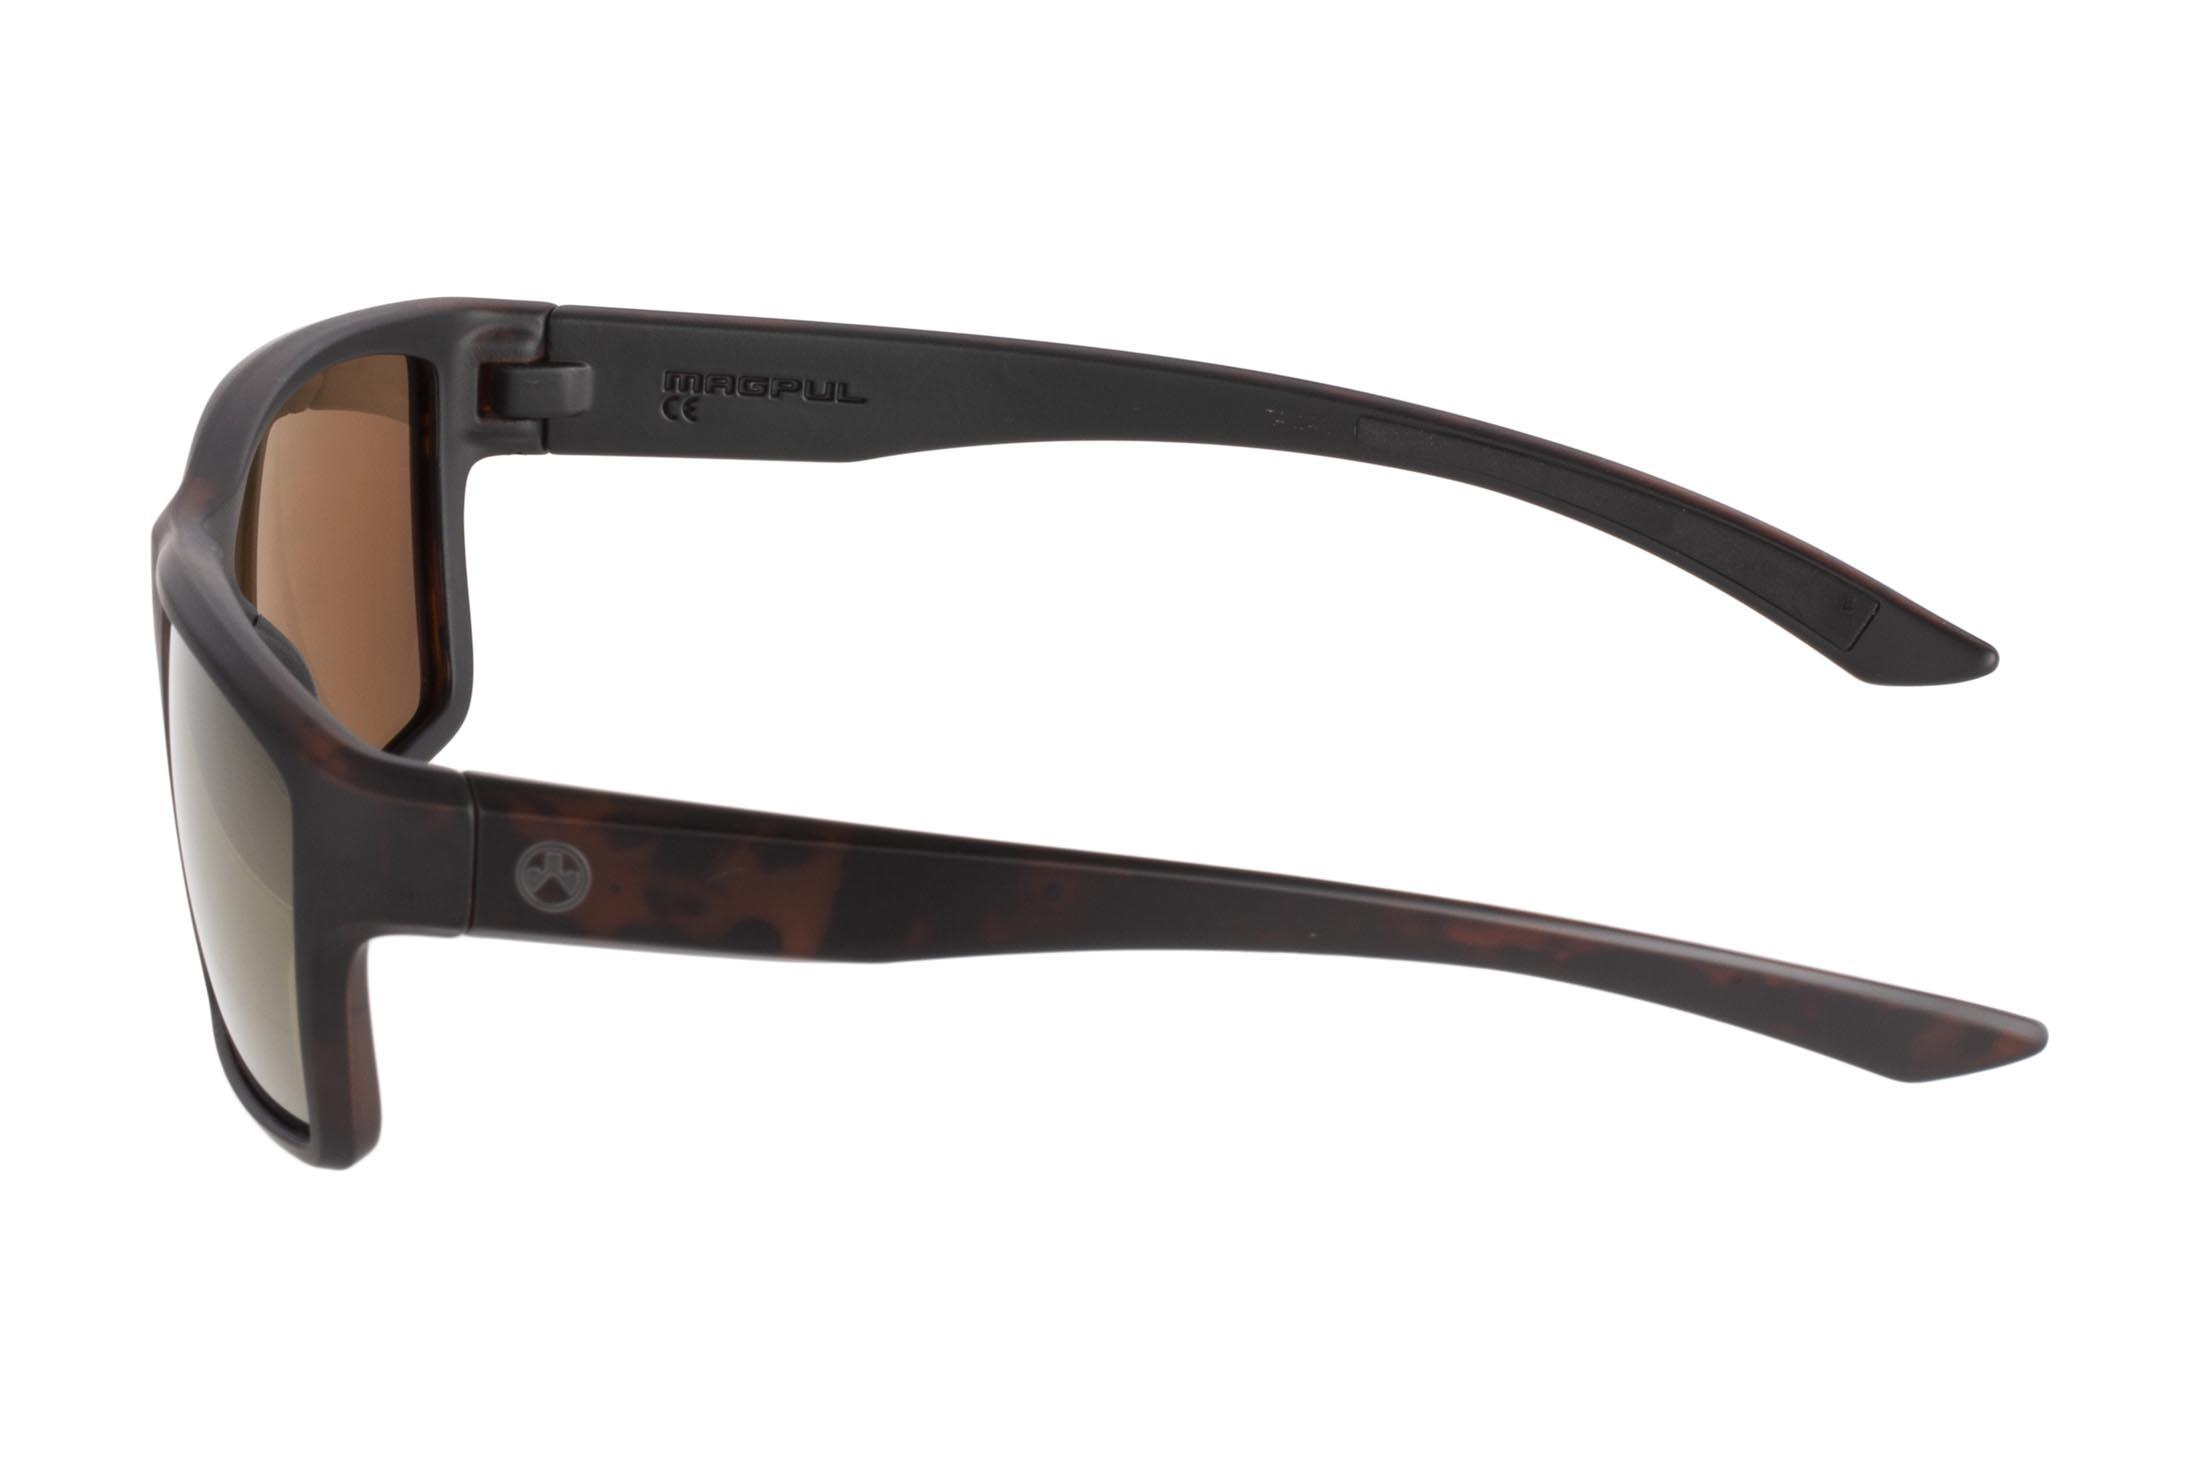 Magpul tortoise frame Explorer polarized sunglasses with bronze/gold lenses are stylish, yet Z87+ and MIL-PRF 32432 ballistic rated